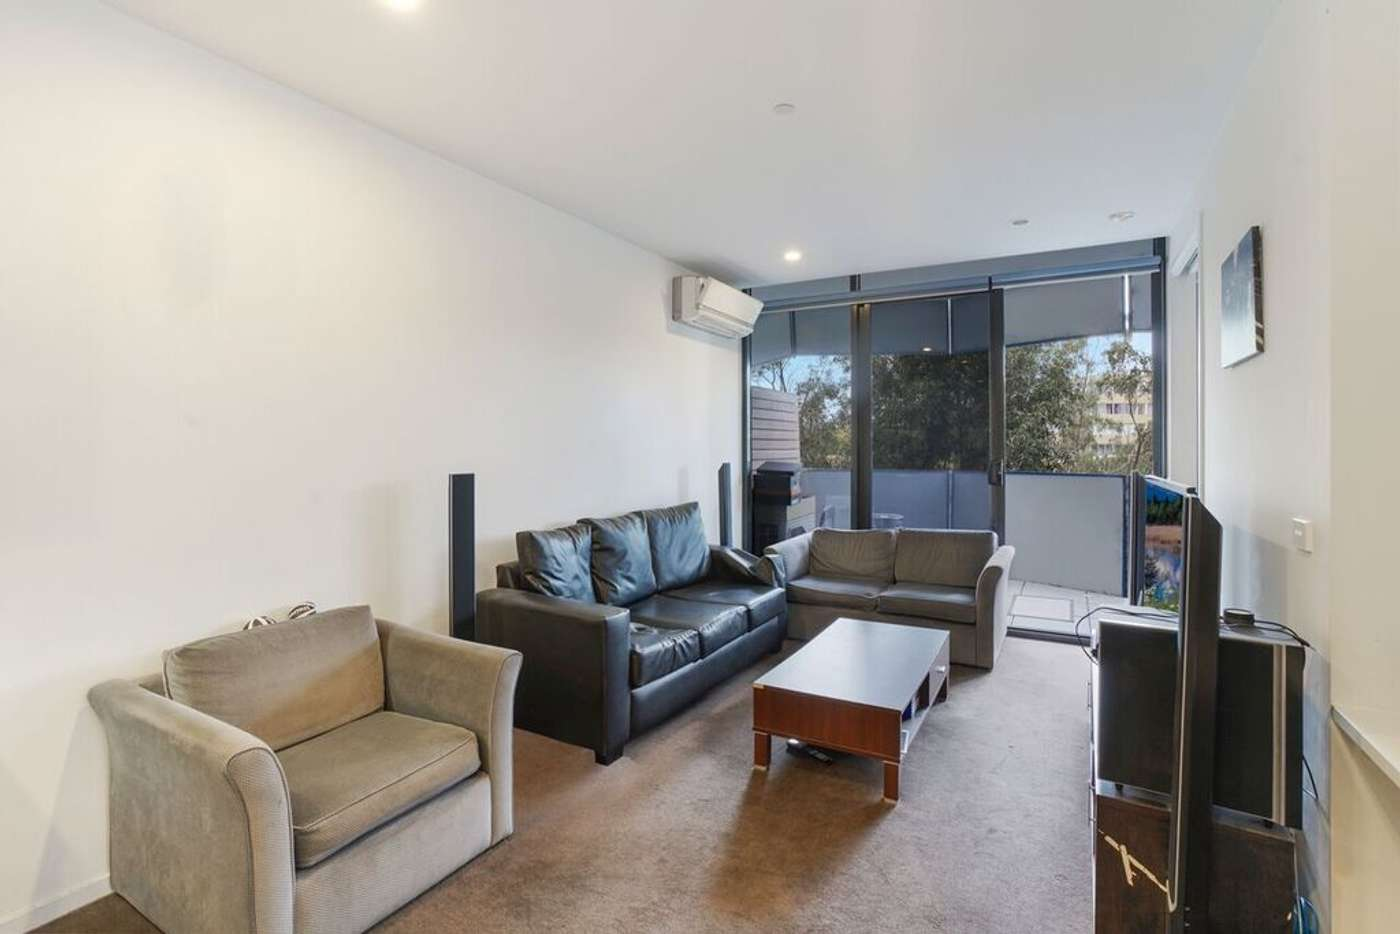 Main view of Homely apartment listing, 248/38 Mt Alexander Road, Travancore VIC 3032